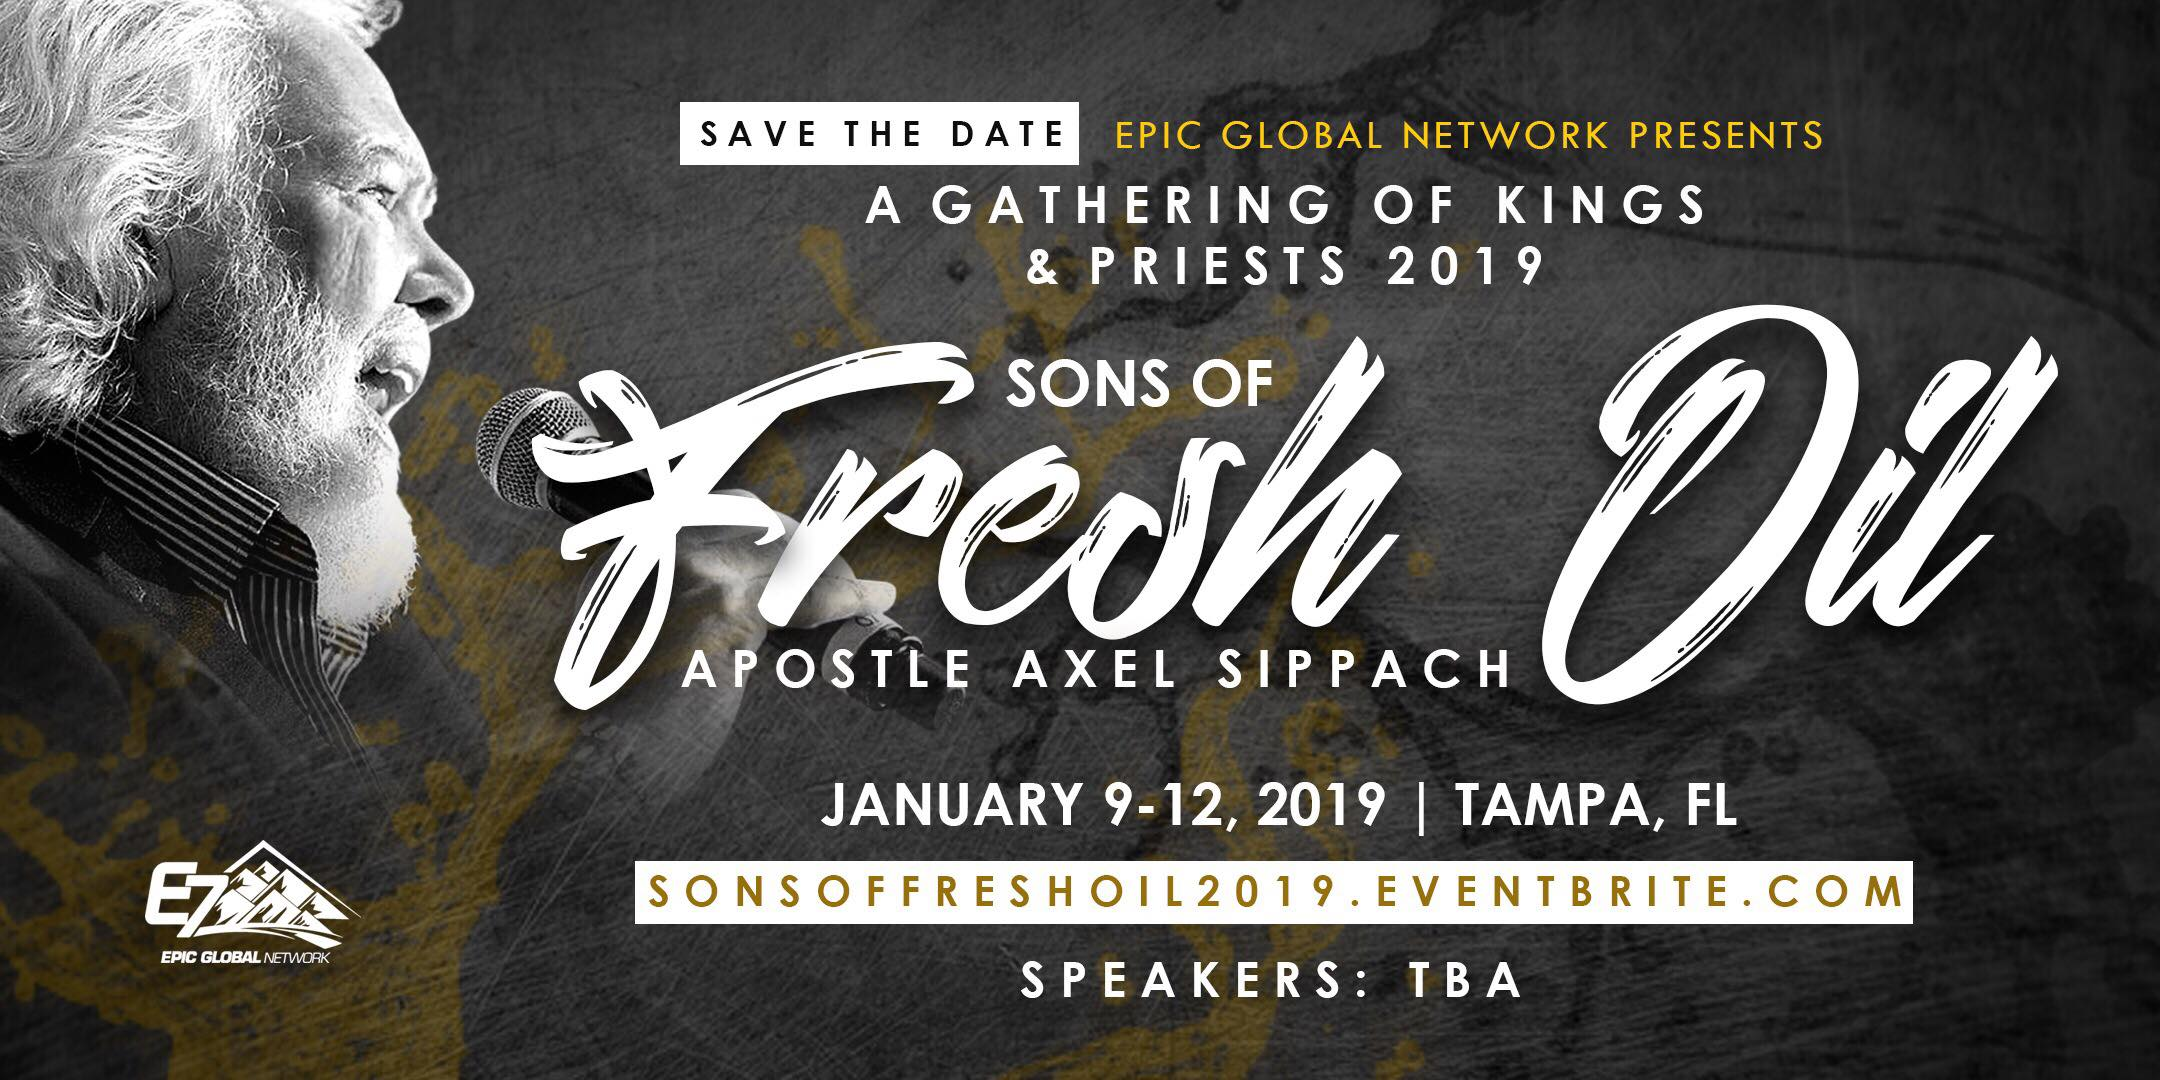 sons-of-fresh-oil-2019-eventbrite-flyer